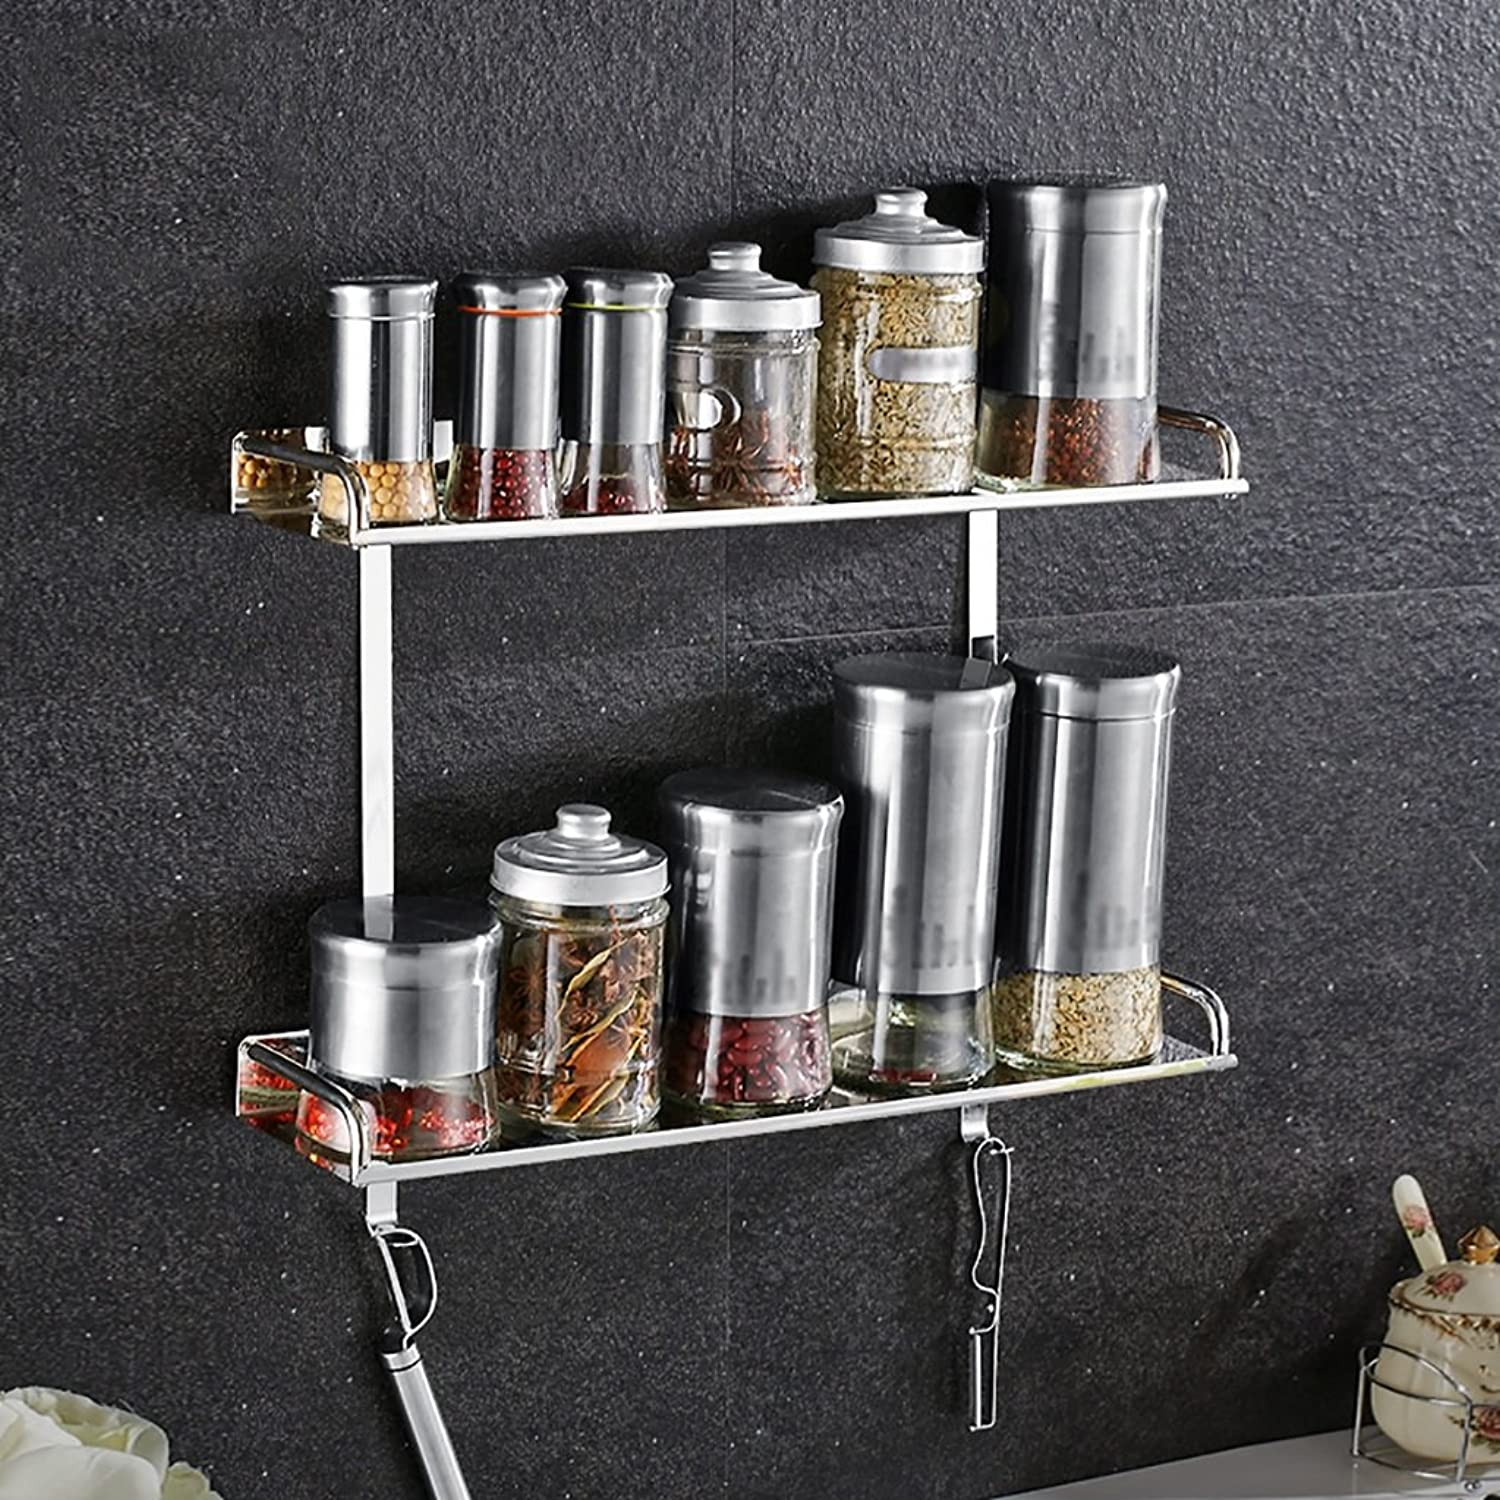 Yxsd 304 Stainless Steel Bathroom Shelf, Kitchen Wall Hanging Seasoning Supplies Silver Storage Rack (color   2 Tier, Size   500mm)